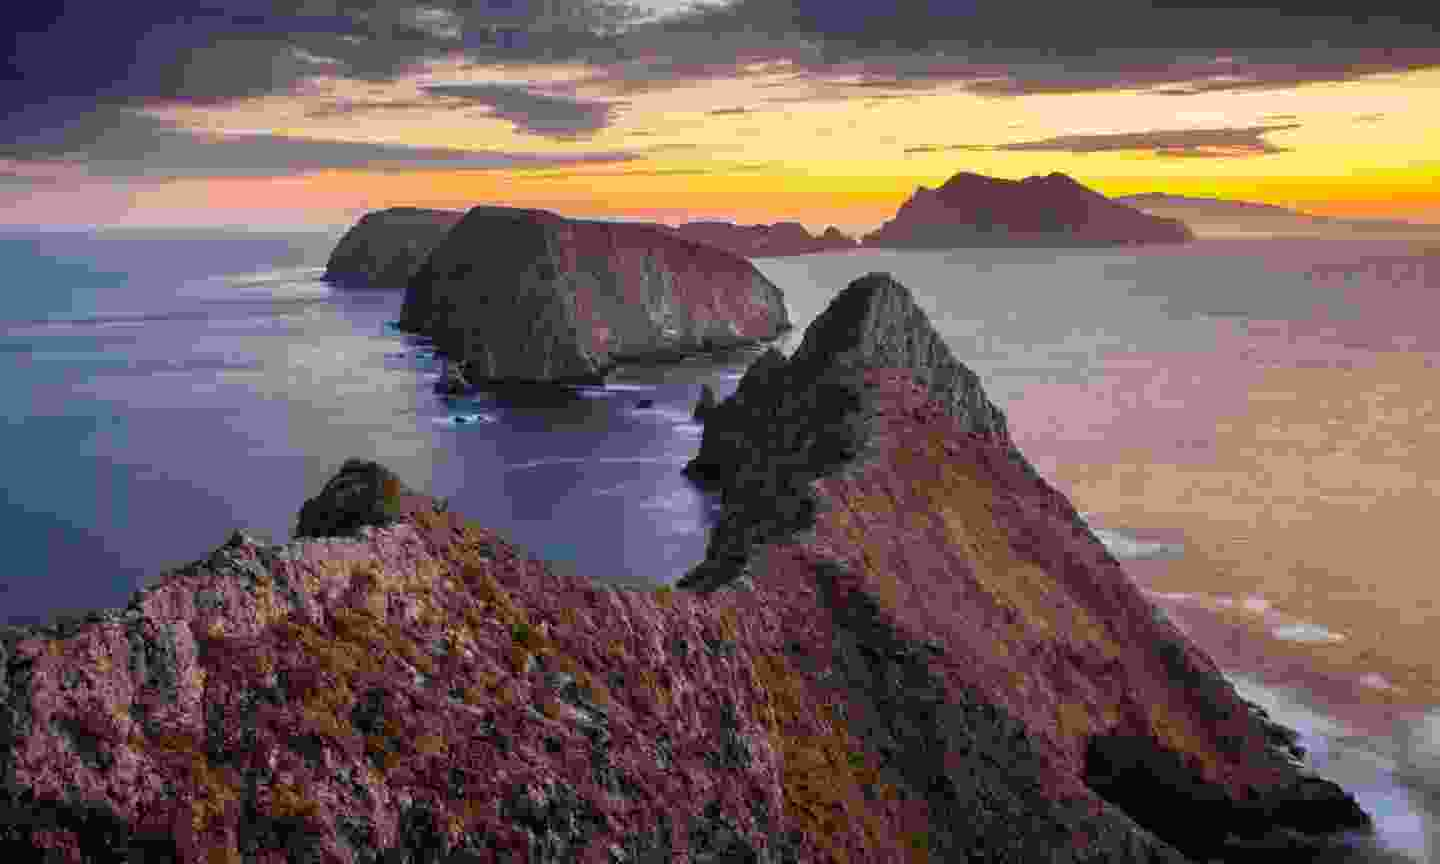 Inspiration Point on Anacapa Island, Channel Islands (Flickr Creative Commons: Brian Hawkins)